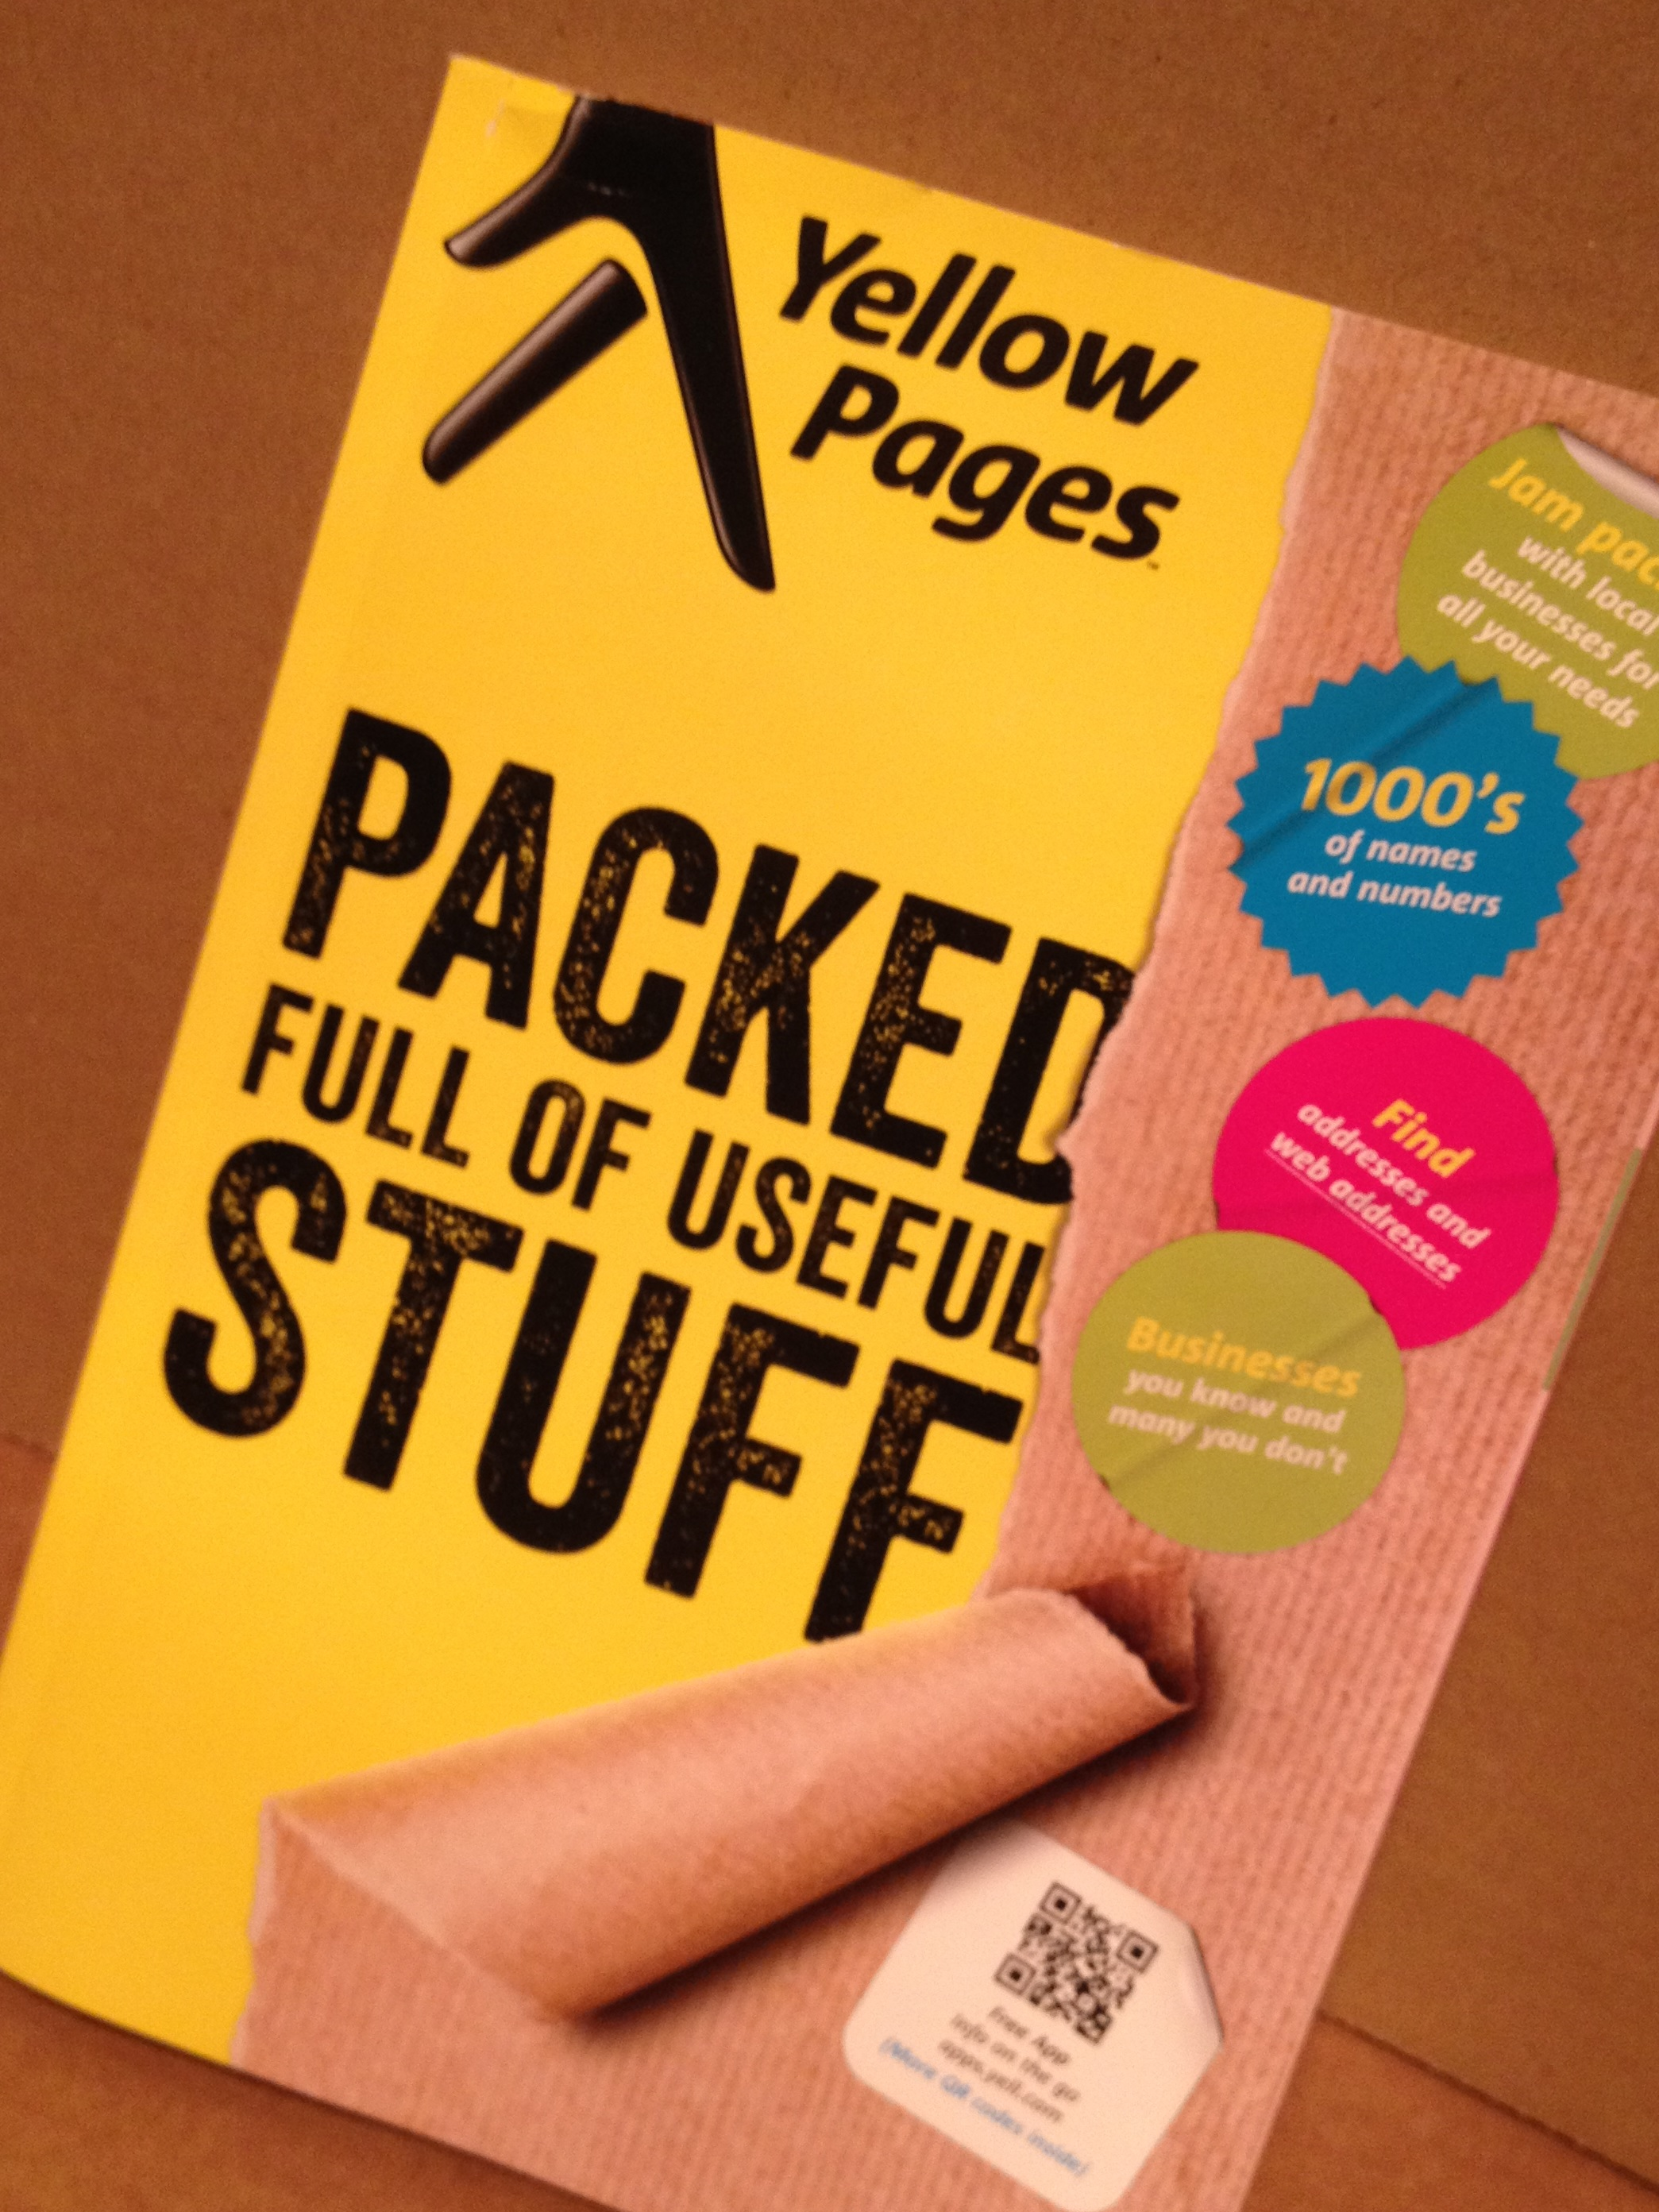 how to delete yellow pages account